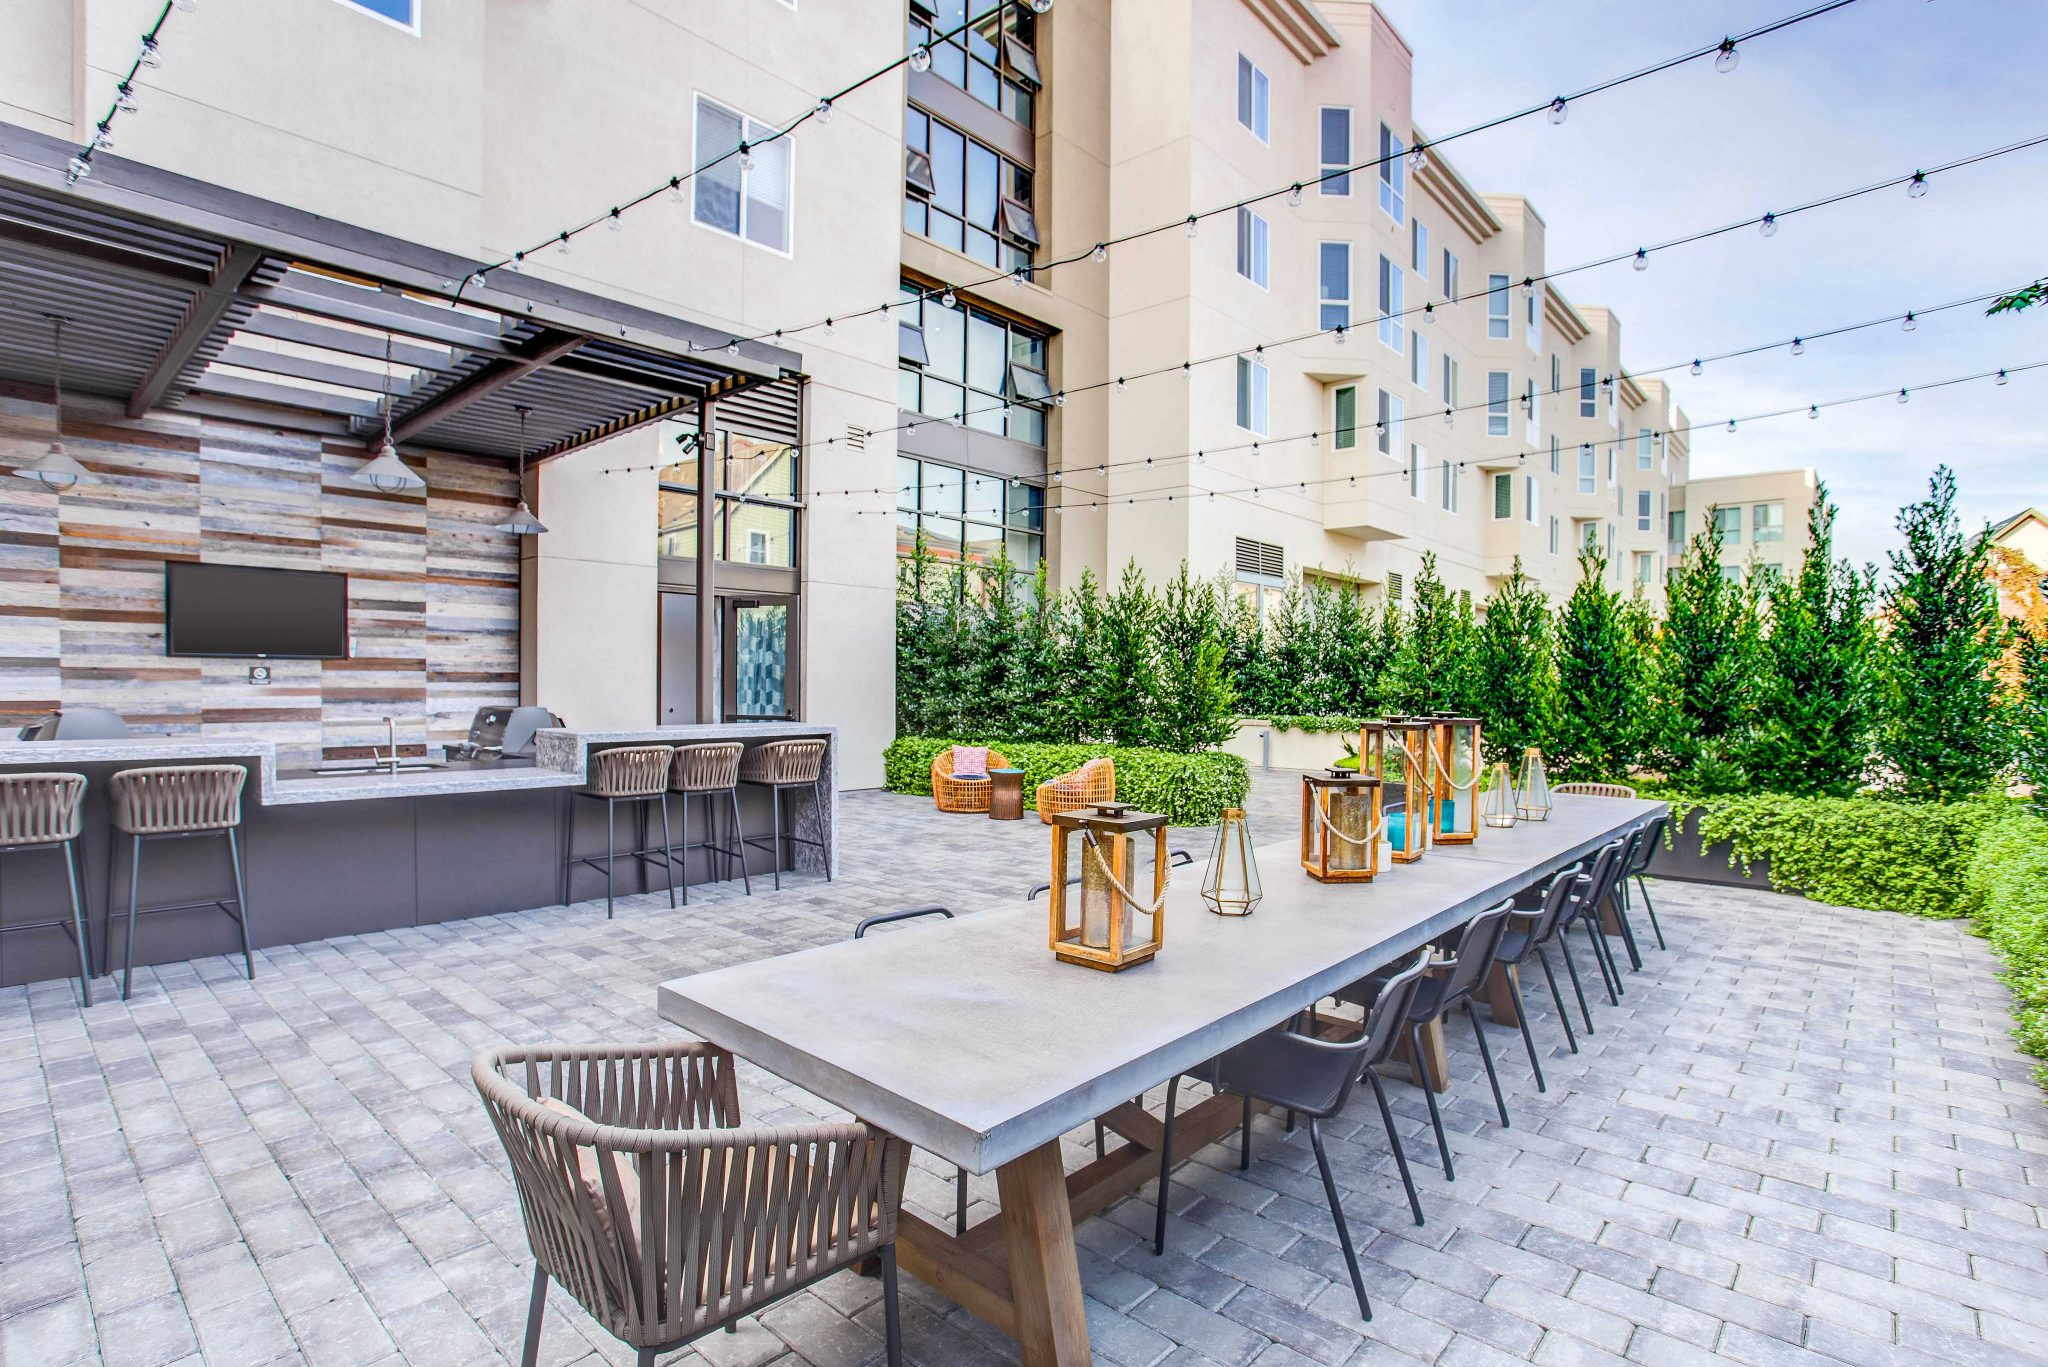 Exterior of apartment complex outdoor courtyard with long dining table and barbeque area